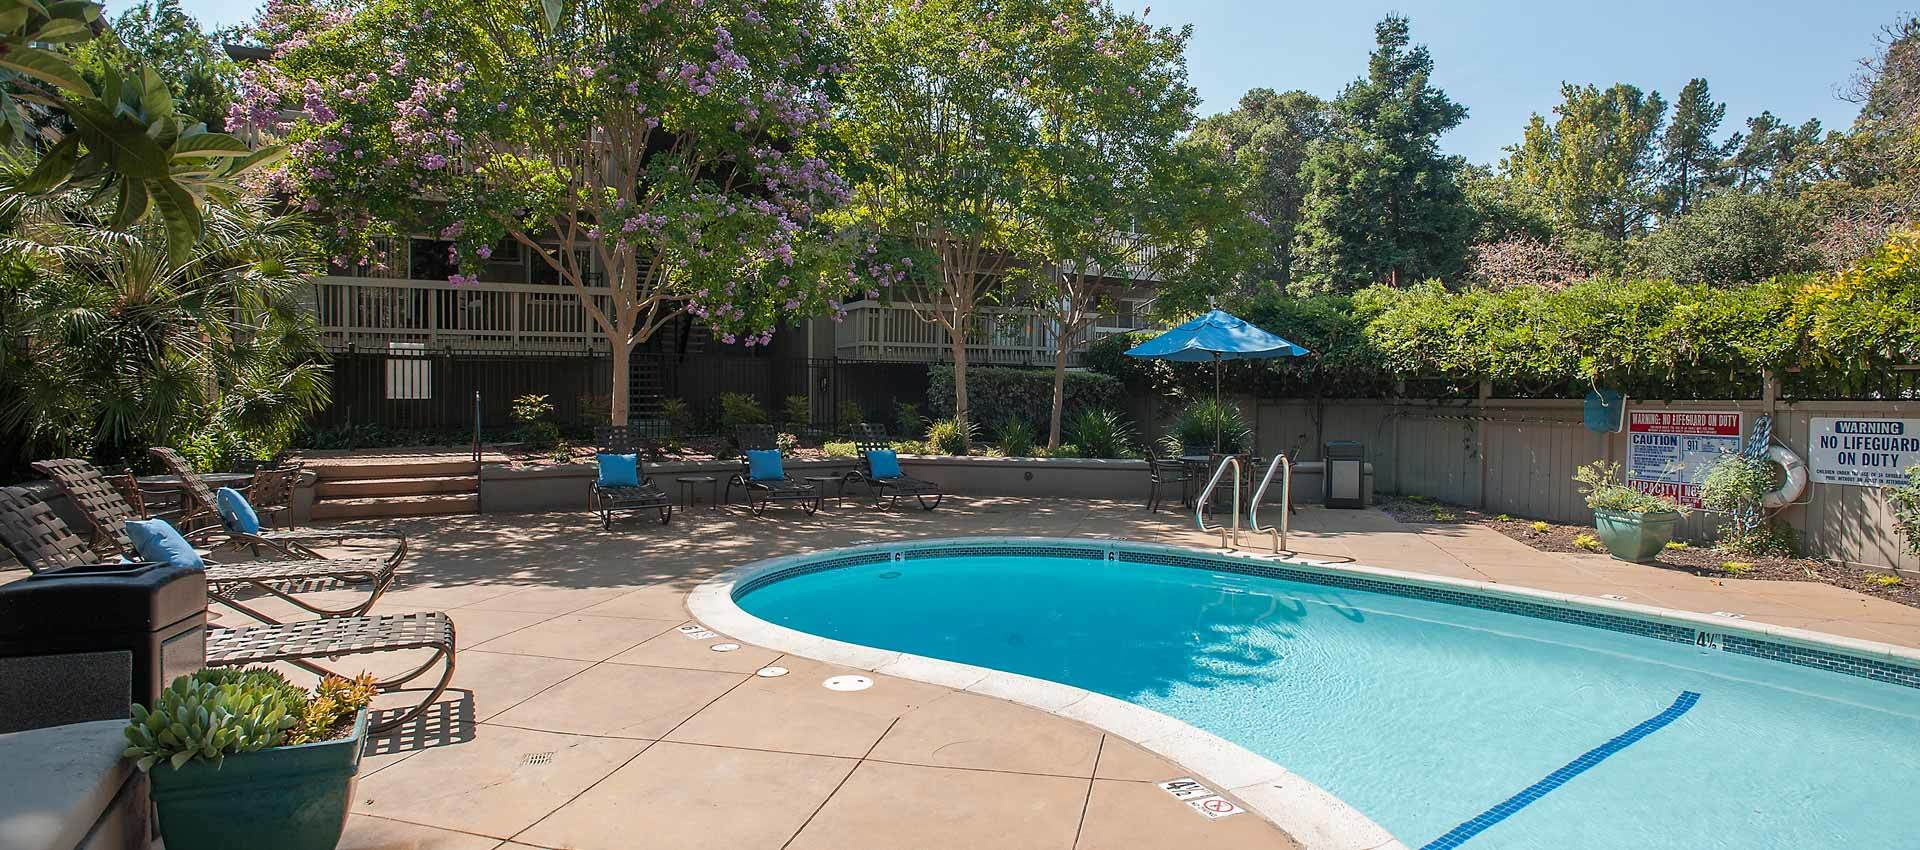 Pool at Regency Plaza Apartment Homes in Martinez, CA